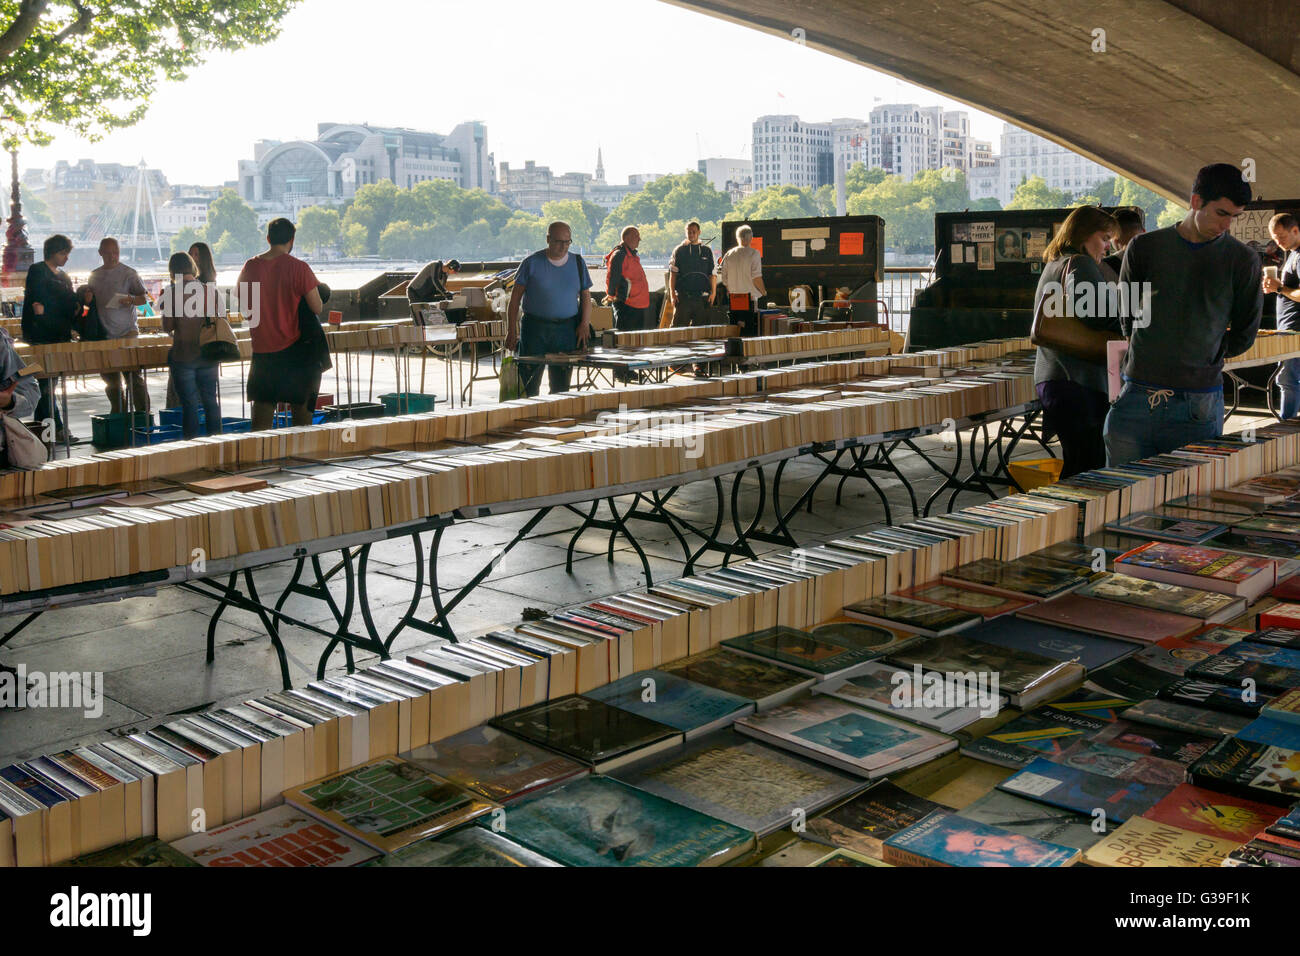 Locals and tourists browsing through the books at the Southbank book market under Waterloo Bridge, London. - Stock Image